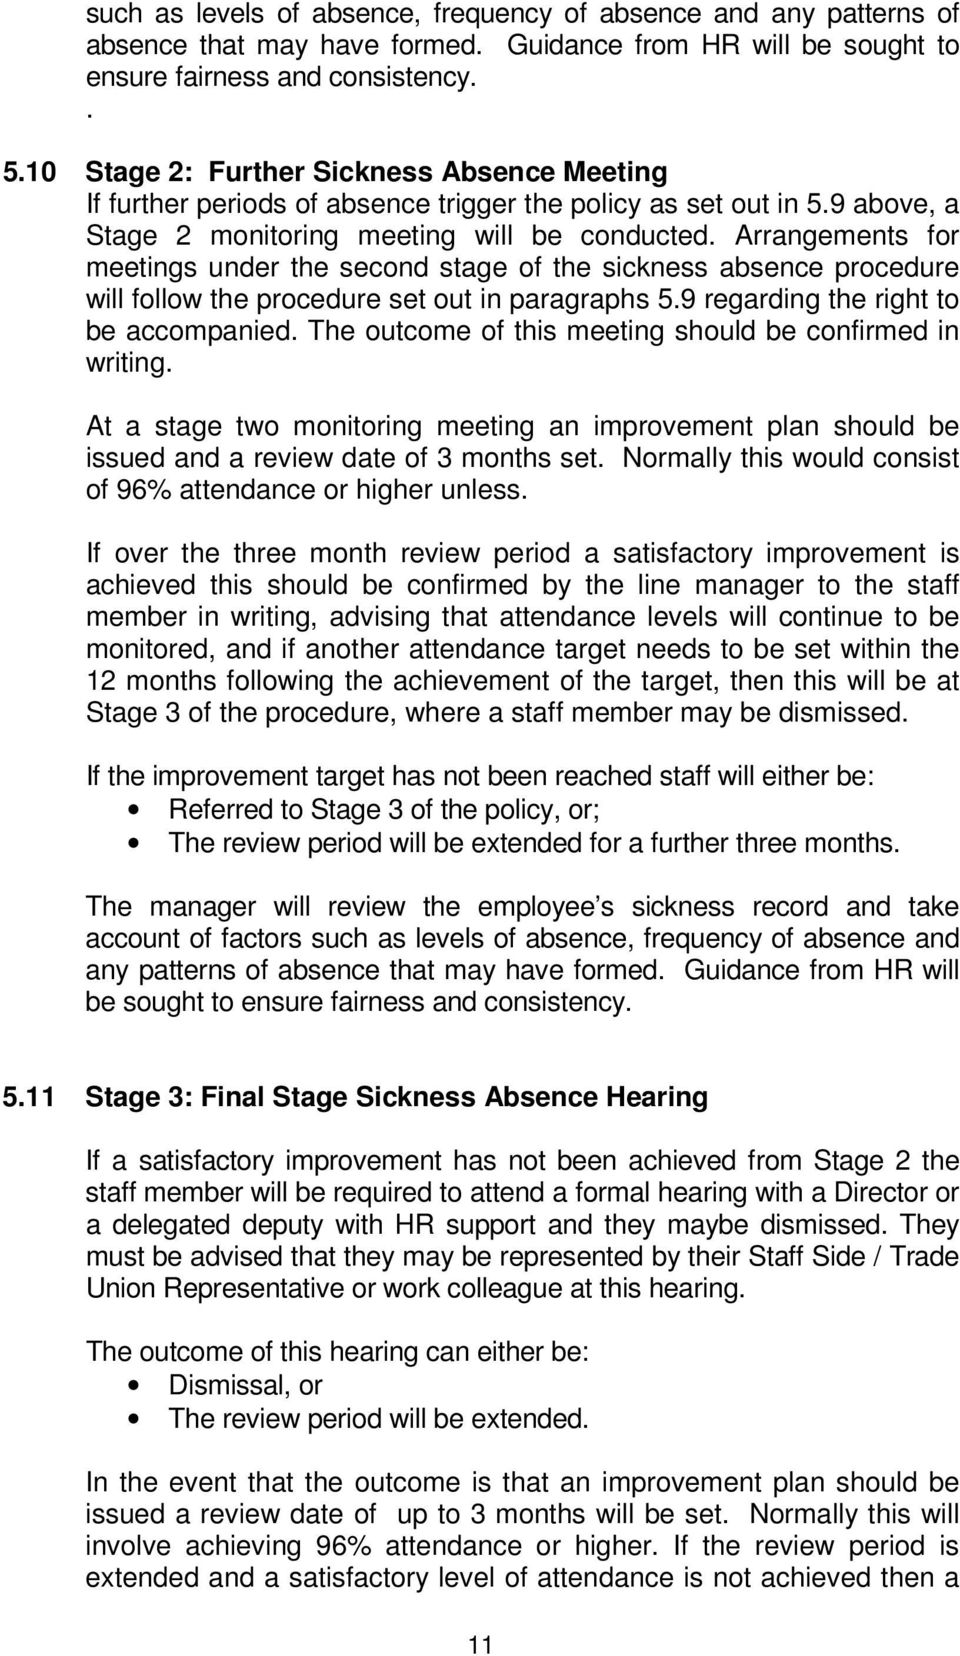 Arrangements for meetings under the second stage of the sickness absence procedure will follow the procedure set out in paragraphs 5.9 regarding the right to be accompanied.